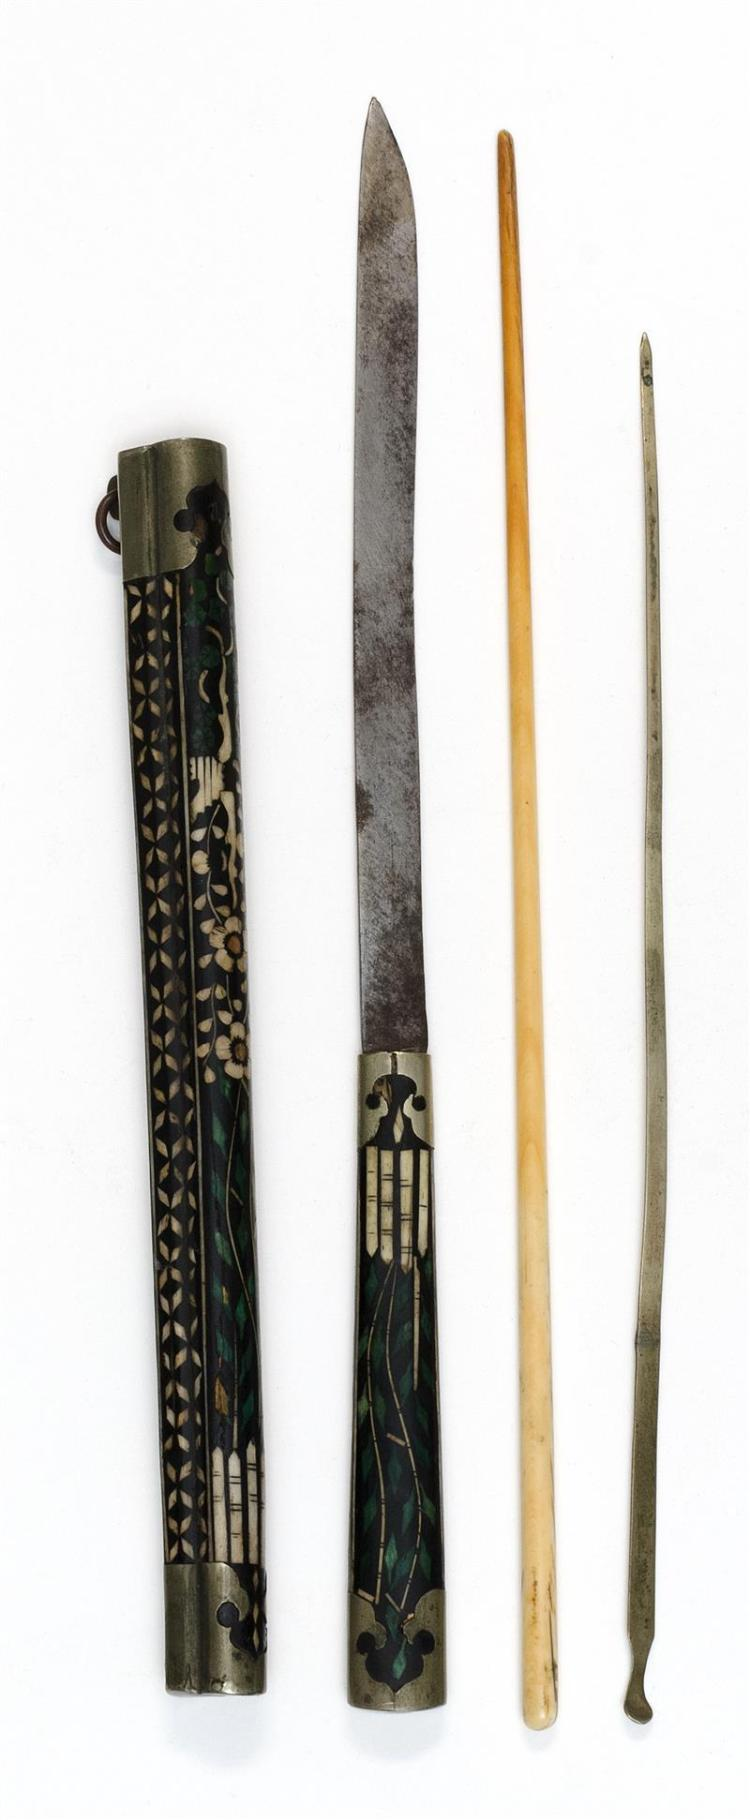 TRAVELING EATING SET Inlaid floral lacquer case with metal mounts. Contains one bone chopstick, a knife, and a pick. Length of knife...